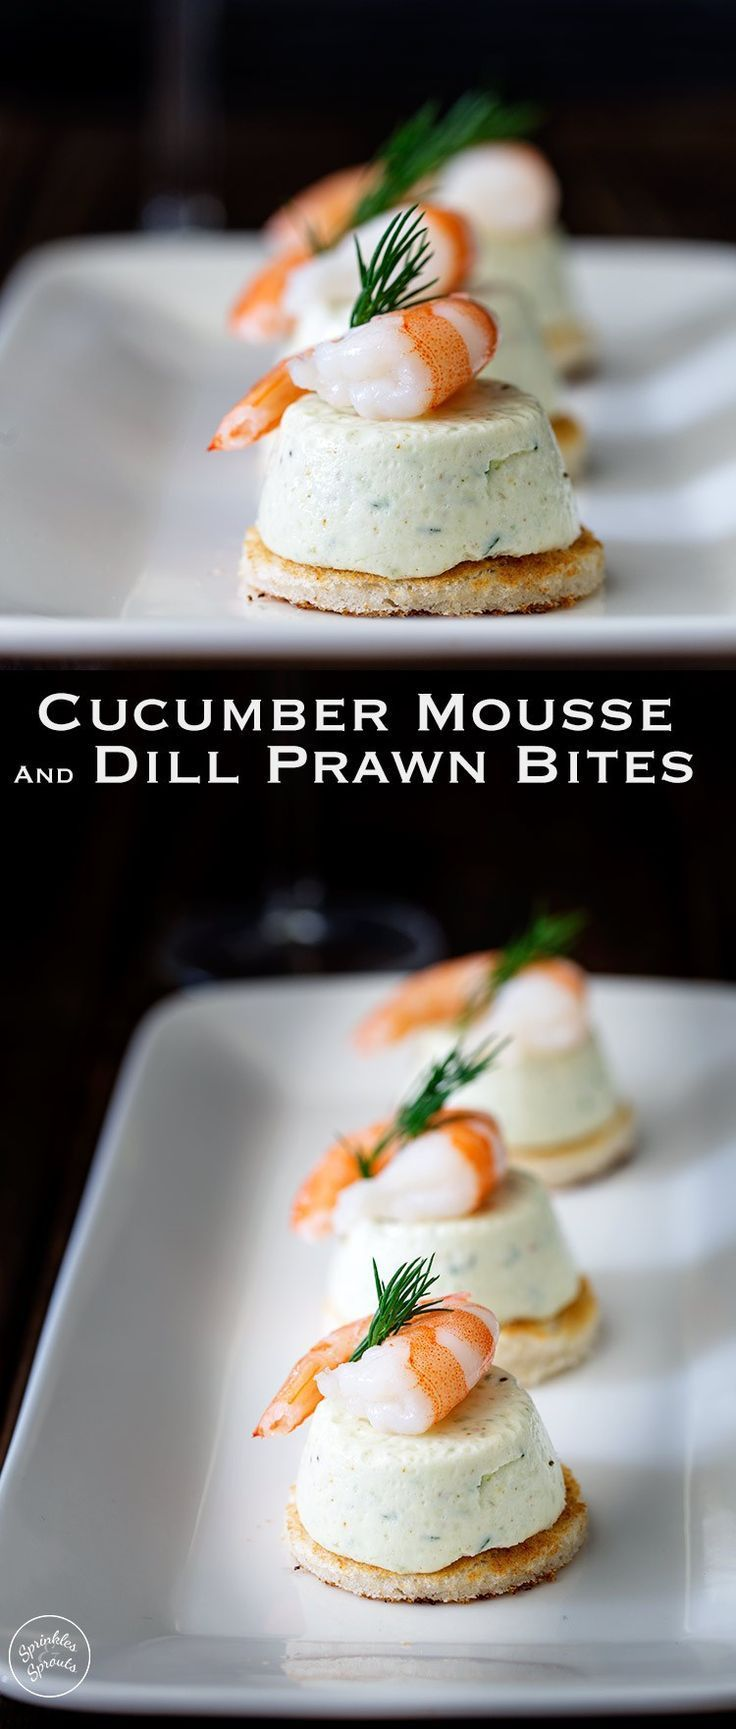 These Cucumber Mousse And Dill Shrimp Bites are sublime. The subtle and refreshing taste of cucumber combined in a soft heavenly mousse, sat on top of a crispy toast circle and topped with a succulent shrimp and the freshness of dill. From https://www.spr